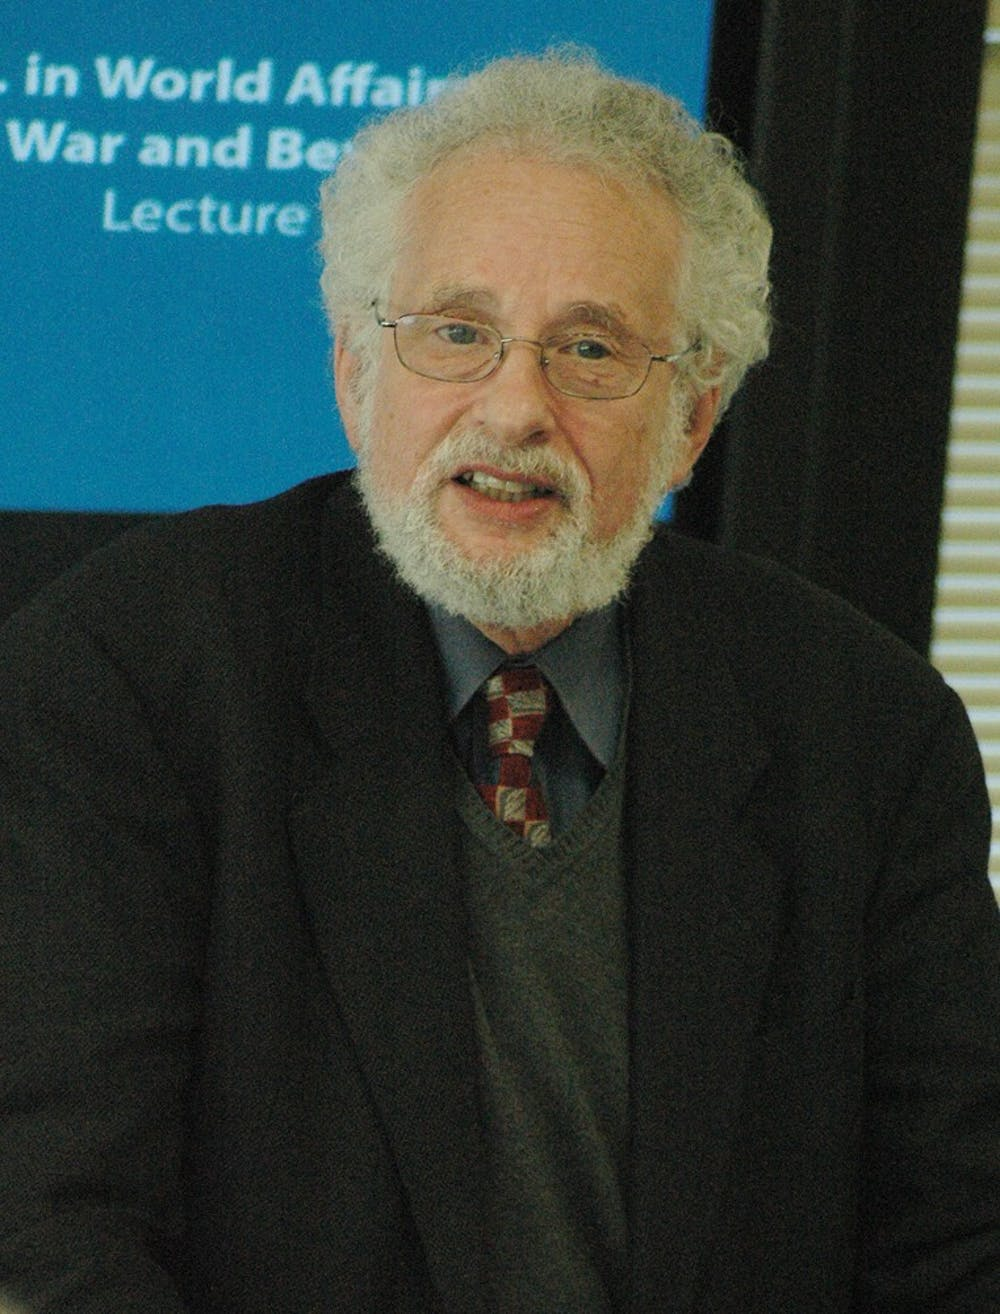 UVa. professor lectures on US foreign policy